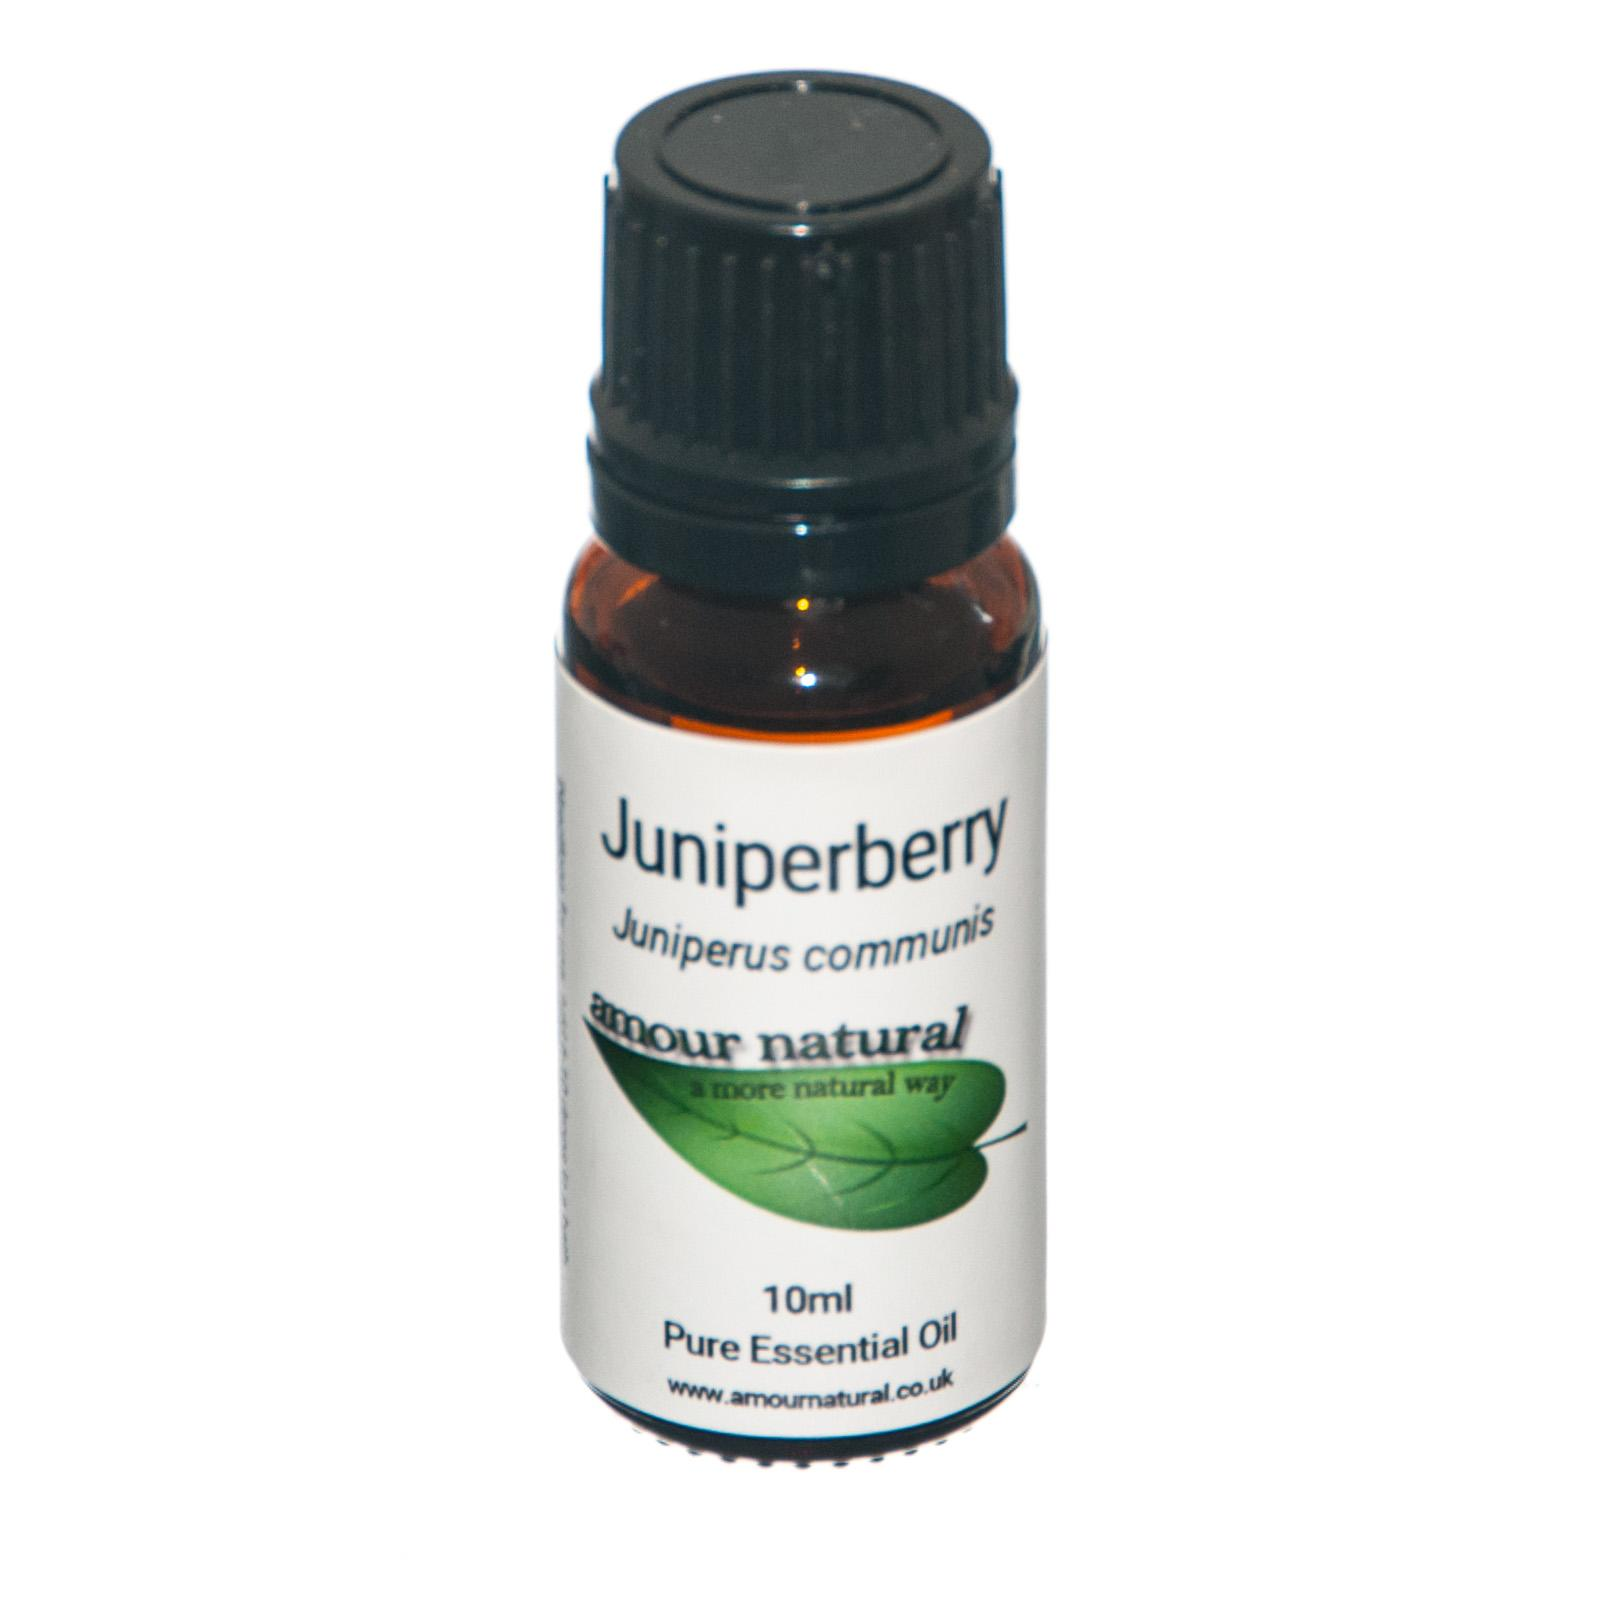 1 x 10 ml bottle of  Juniperberry Essential Oil